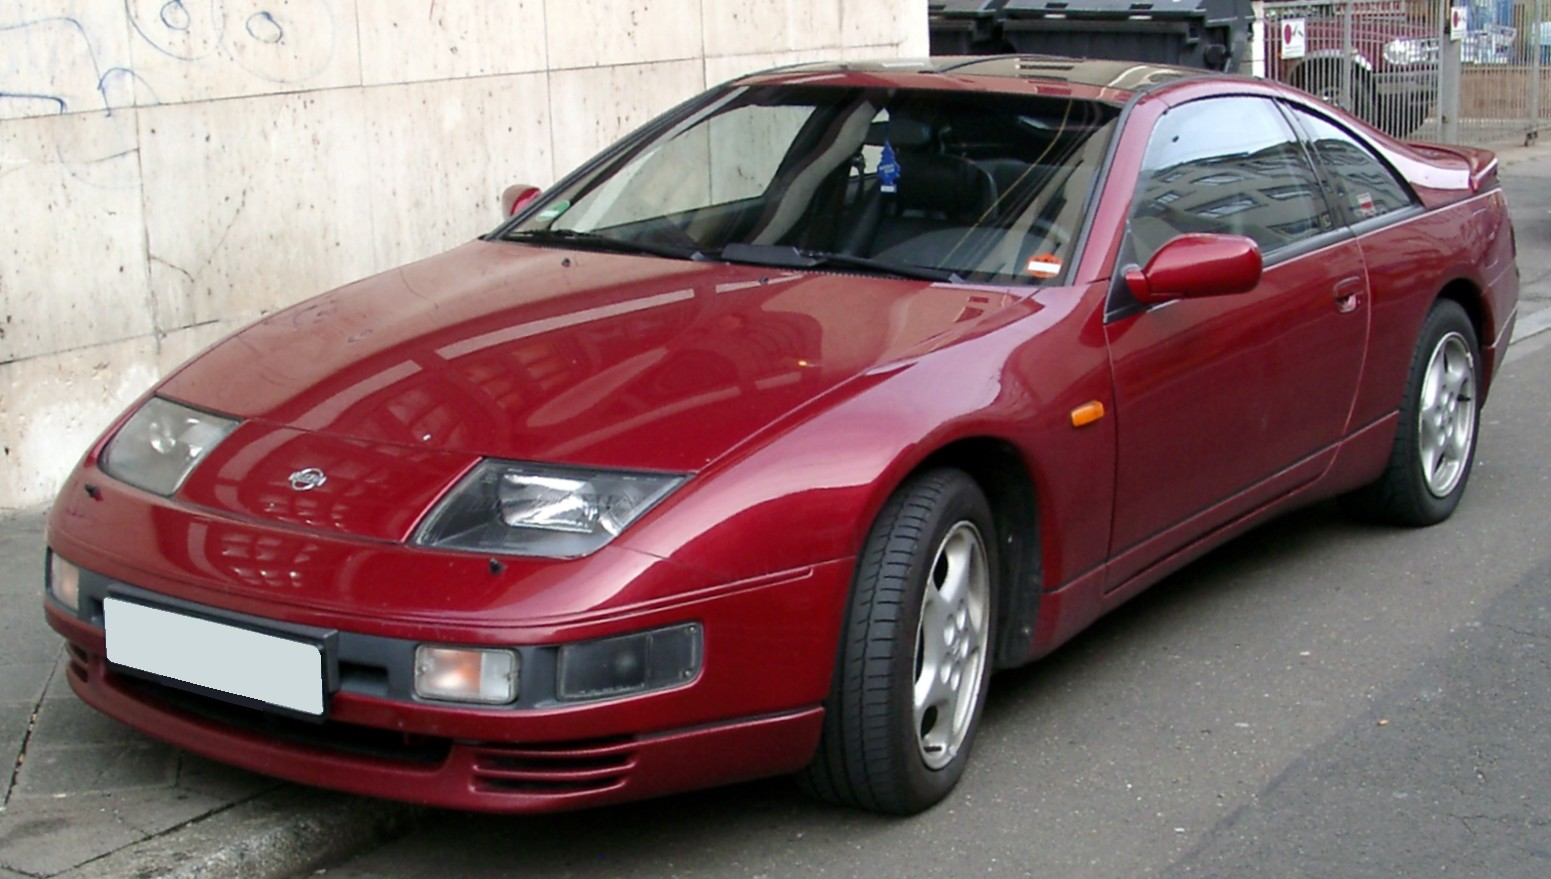 nissan 300zx questions turbo cargurus. Black Bedroom Furniture Sets. Home Design Ideas